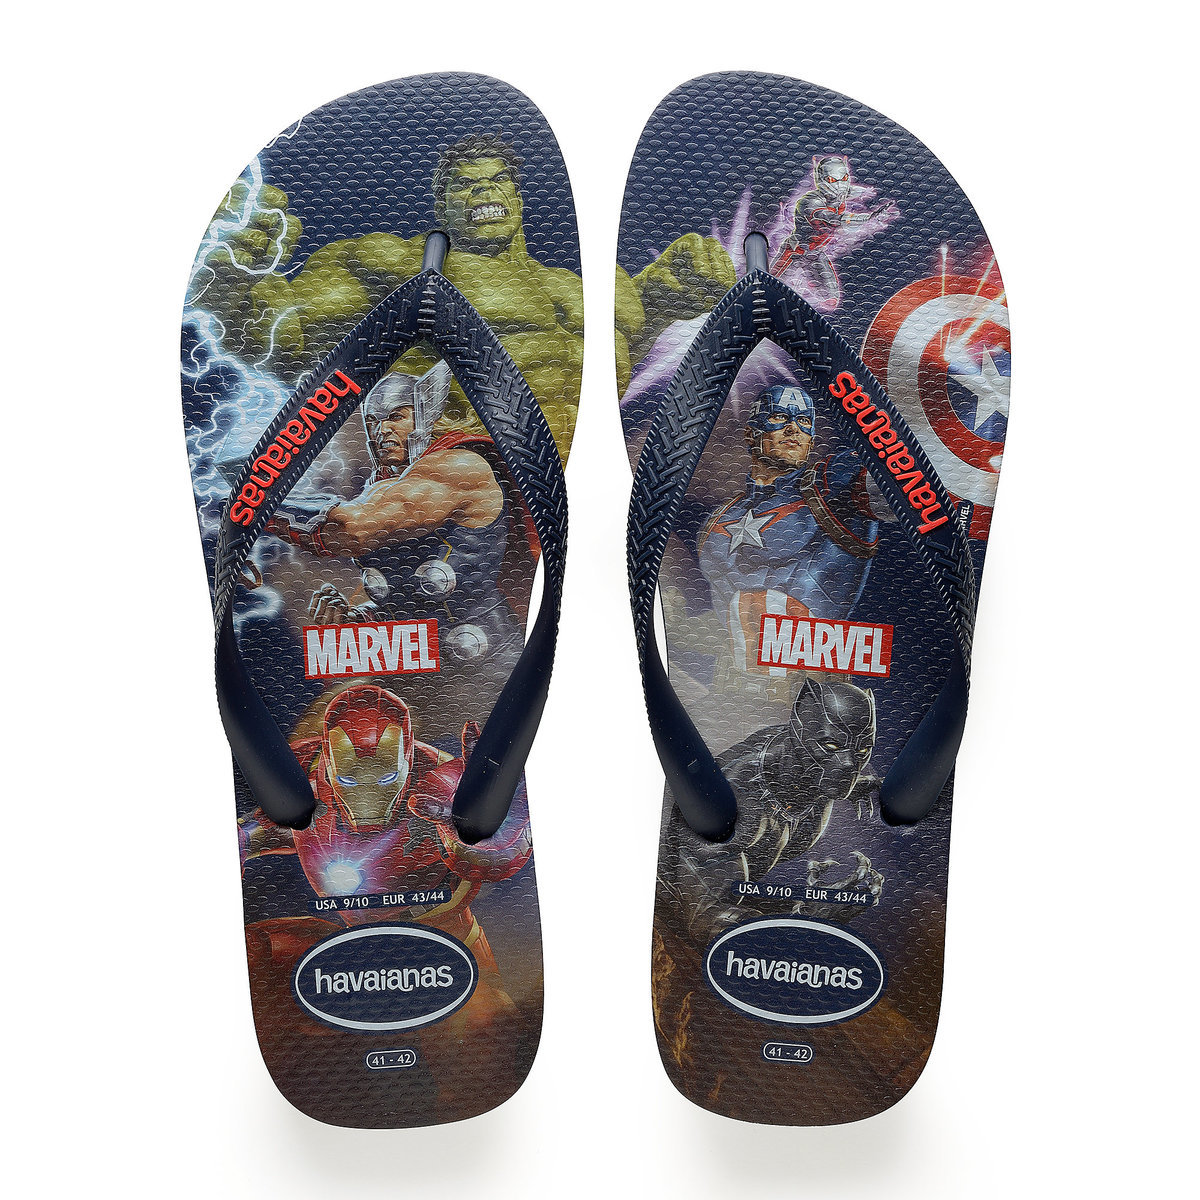 192f9d2e899a Product Image of Marvel s Avengers Flip Flops for Men by Havaianas   1